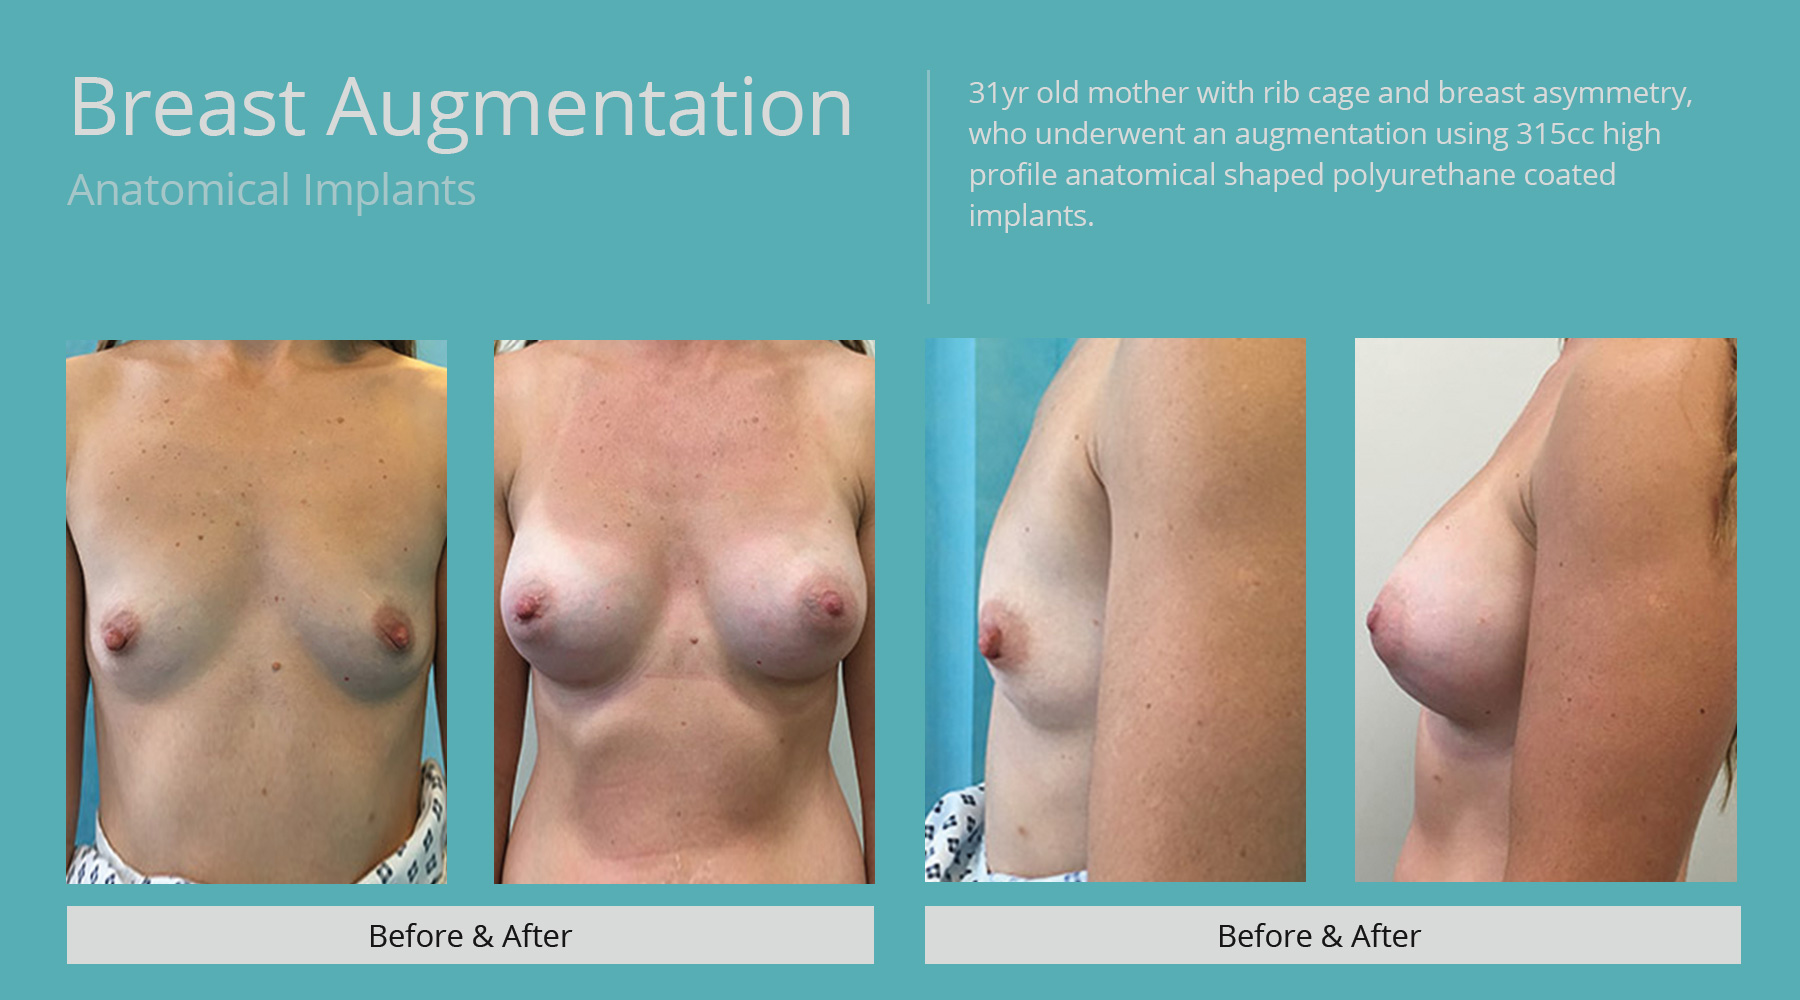 Breast-Augmentation-anatomical-17